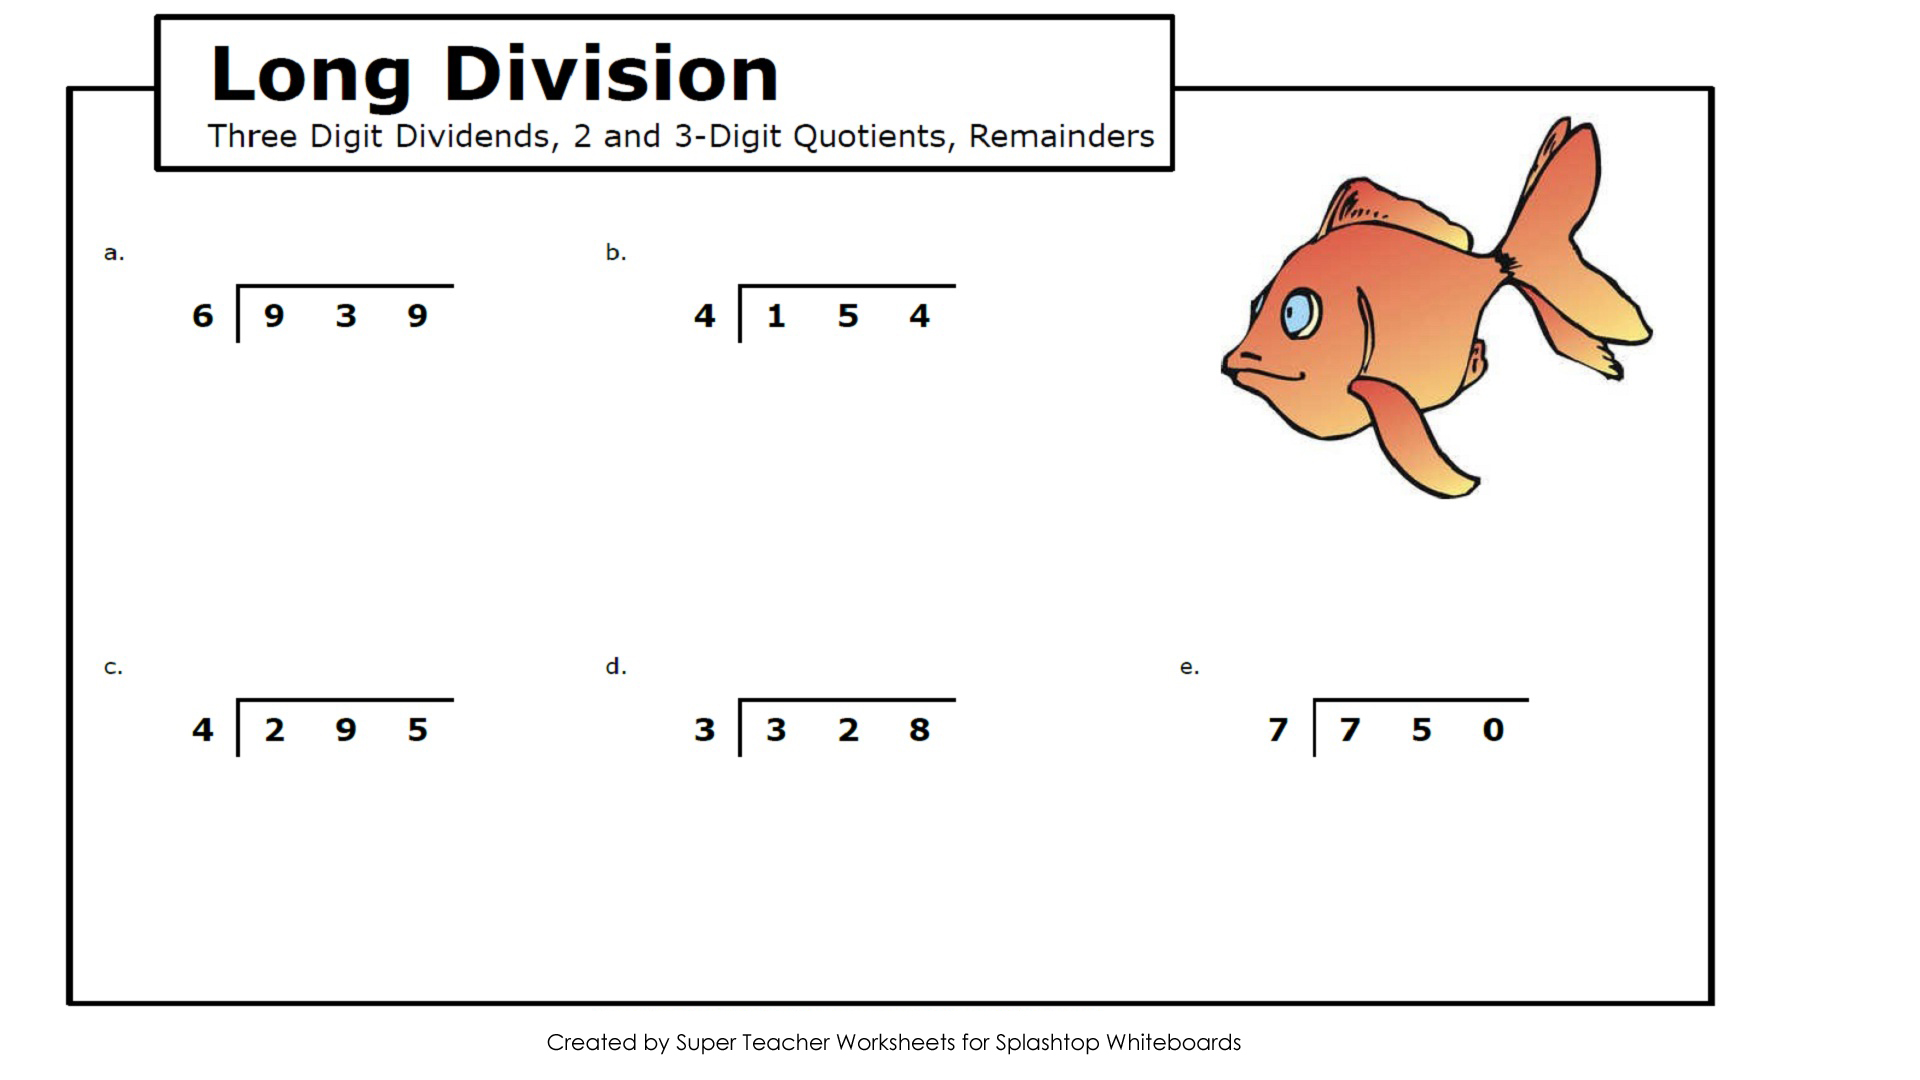 worksheet Superteacher Worksheets splashtop whiteboard background graphics long division 3 digit dividends